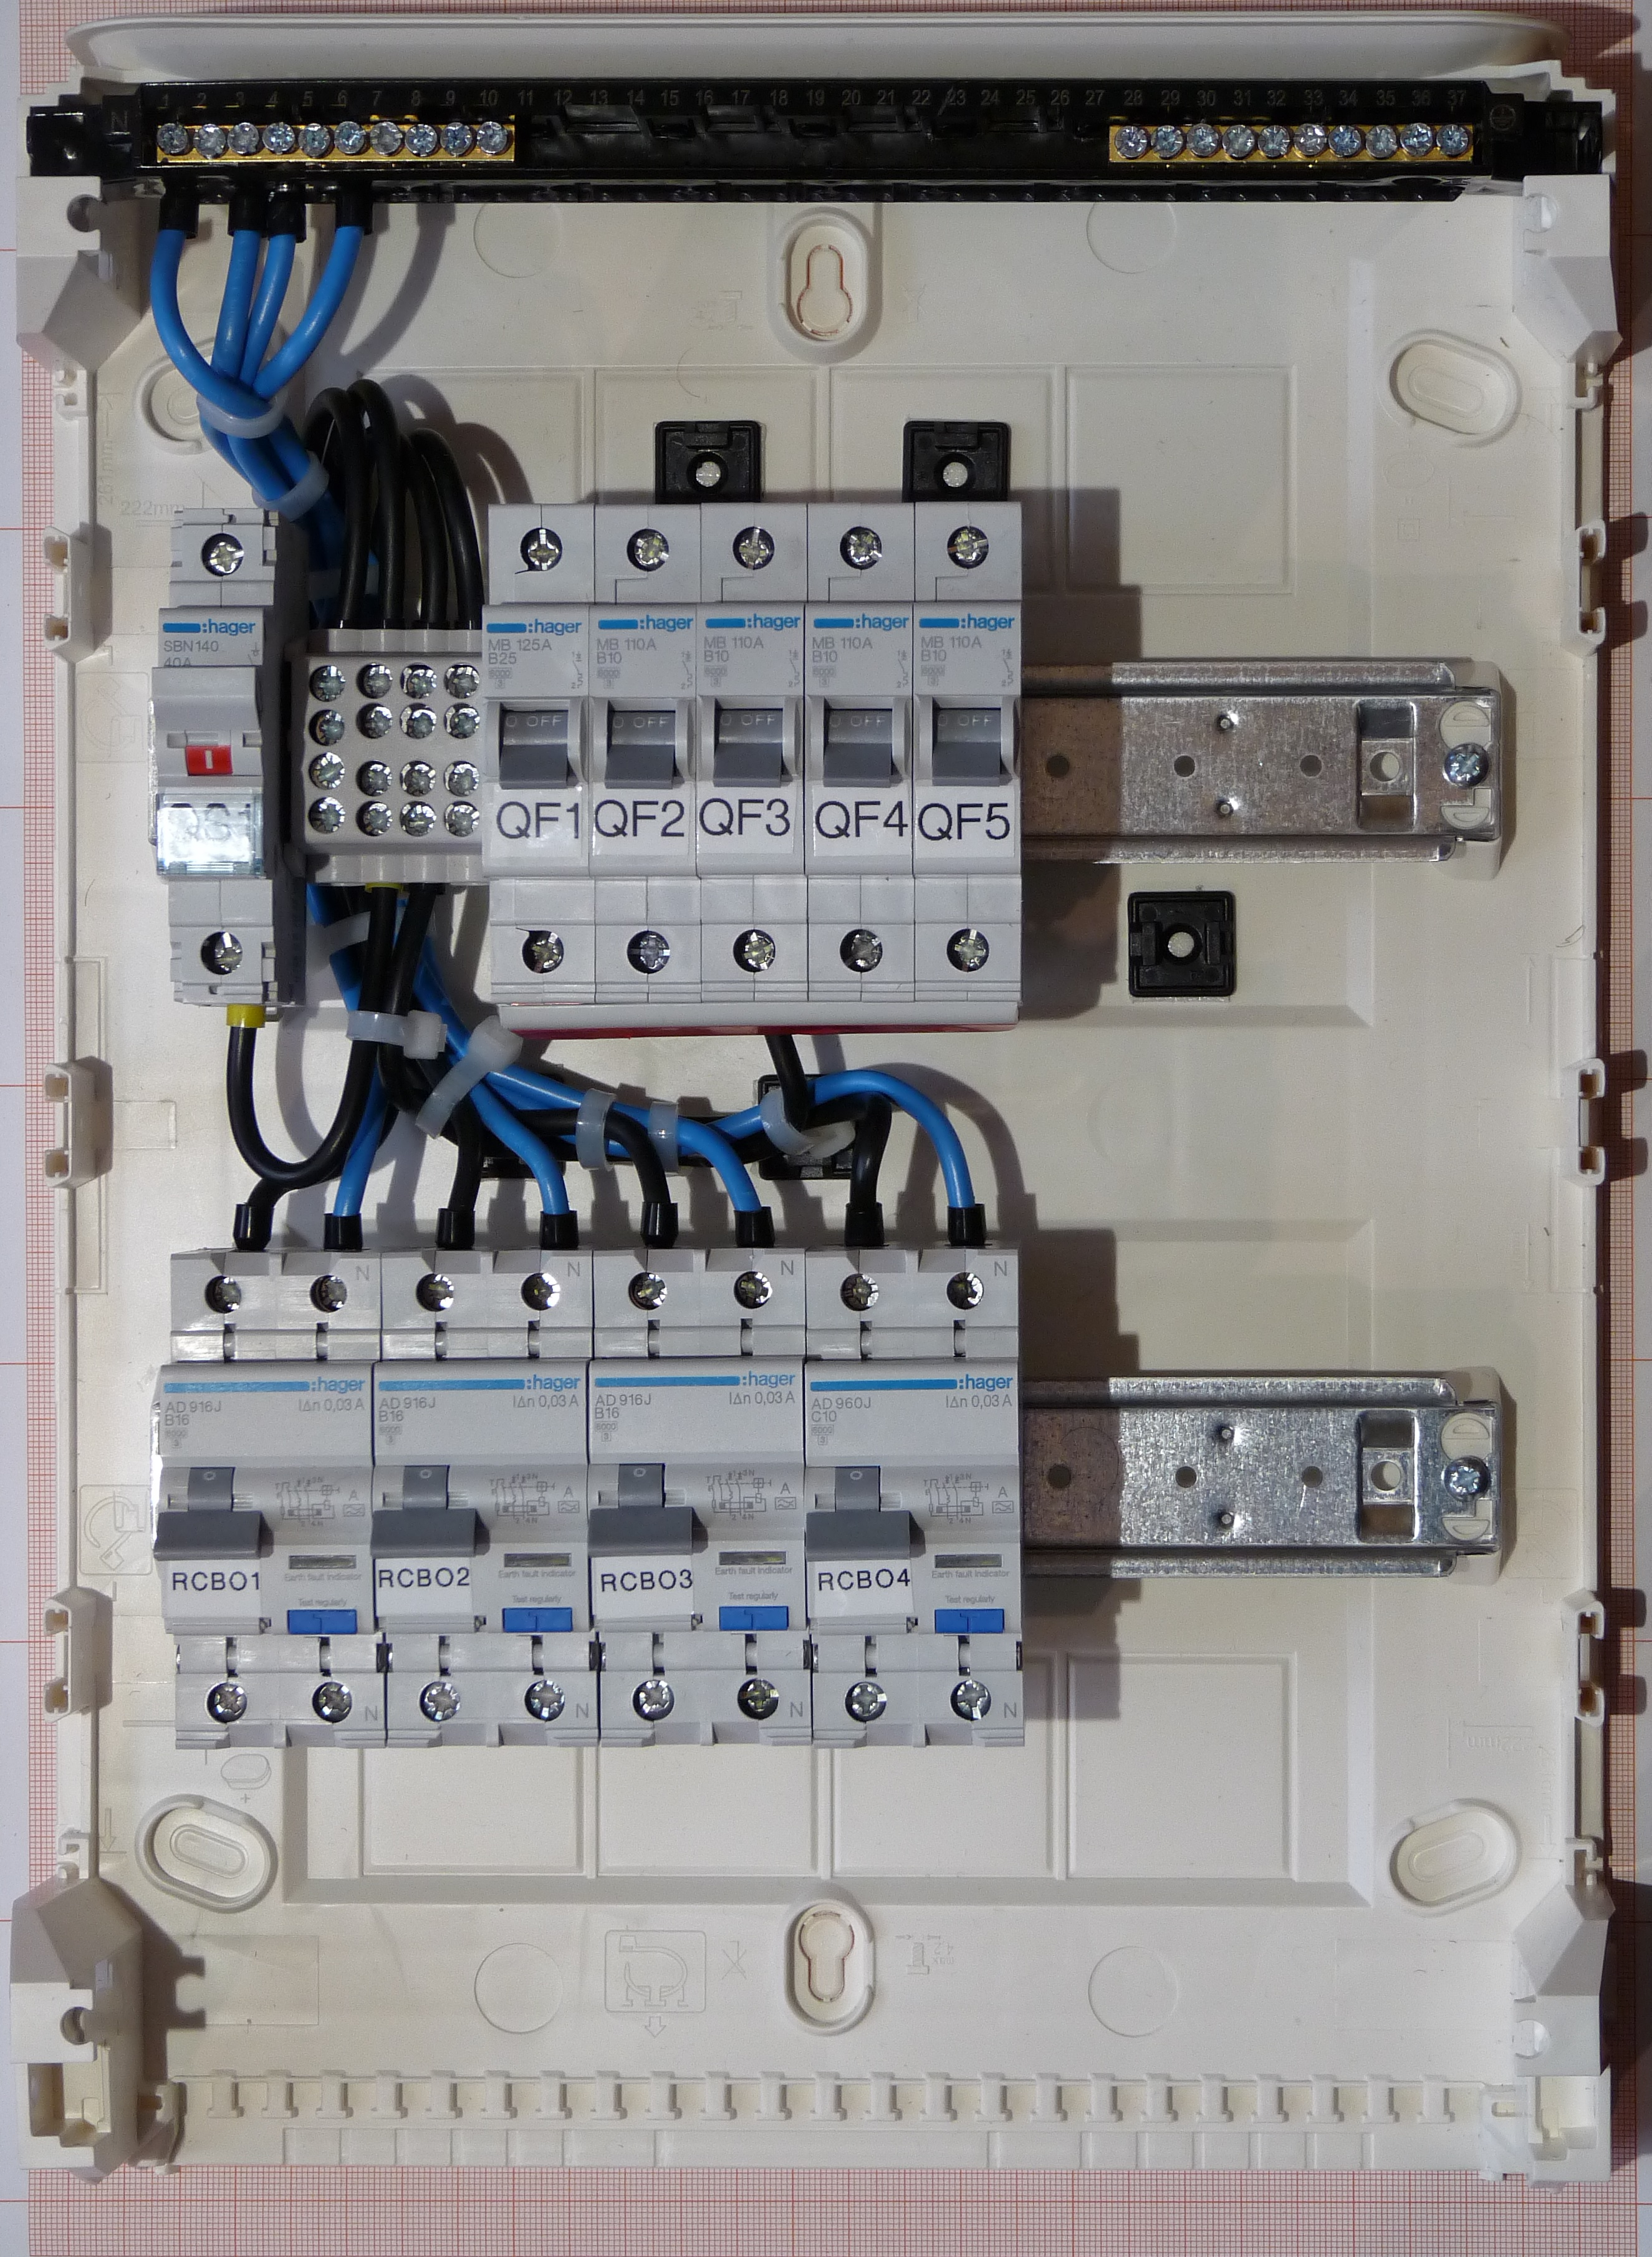 file:fuse box on hager components.jpg - wikimedia commons  - wikimedia commons